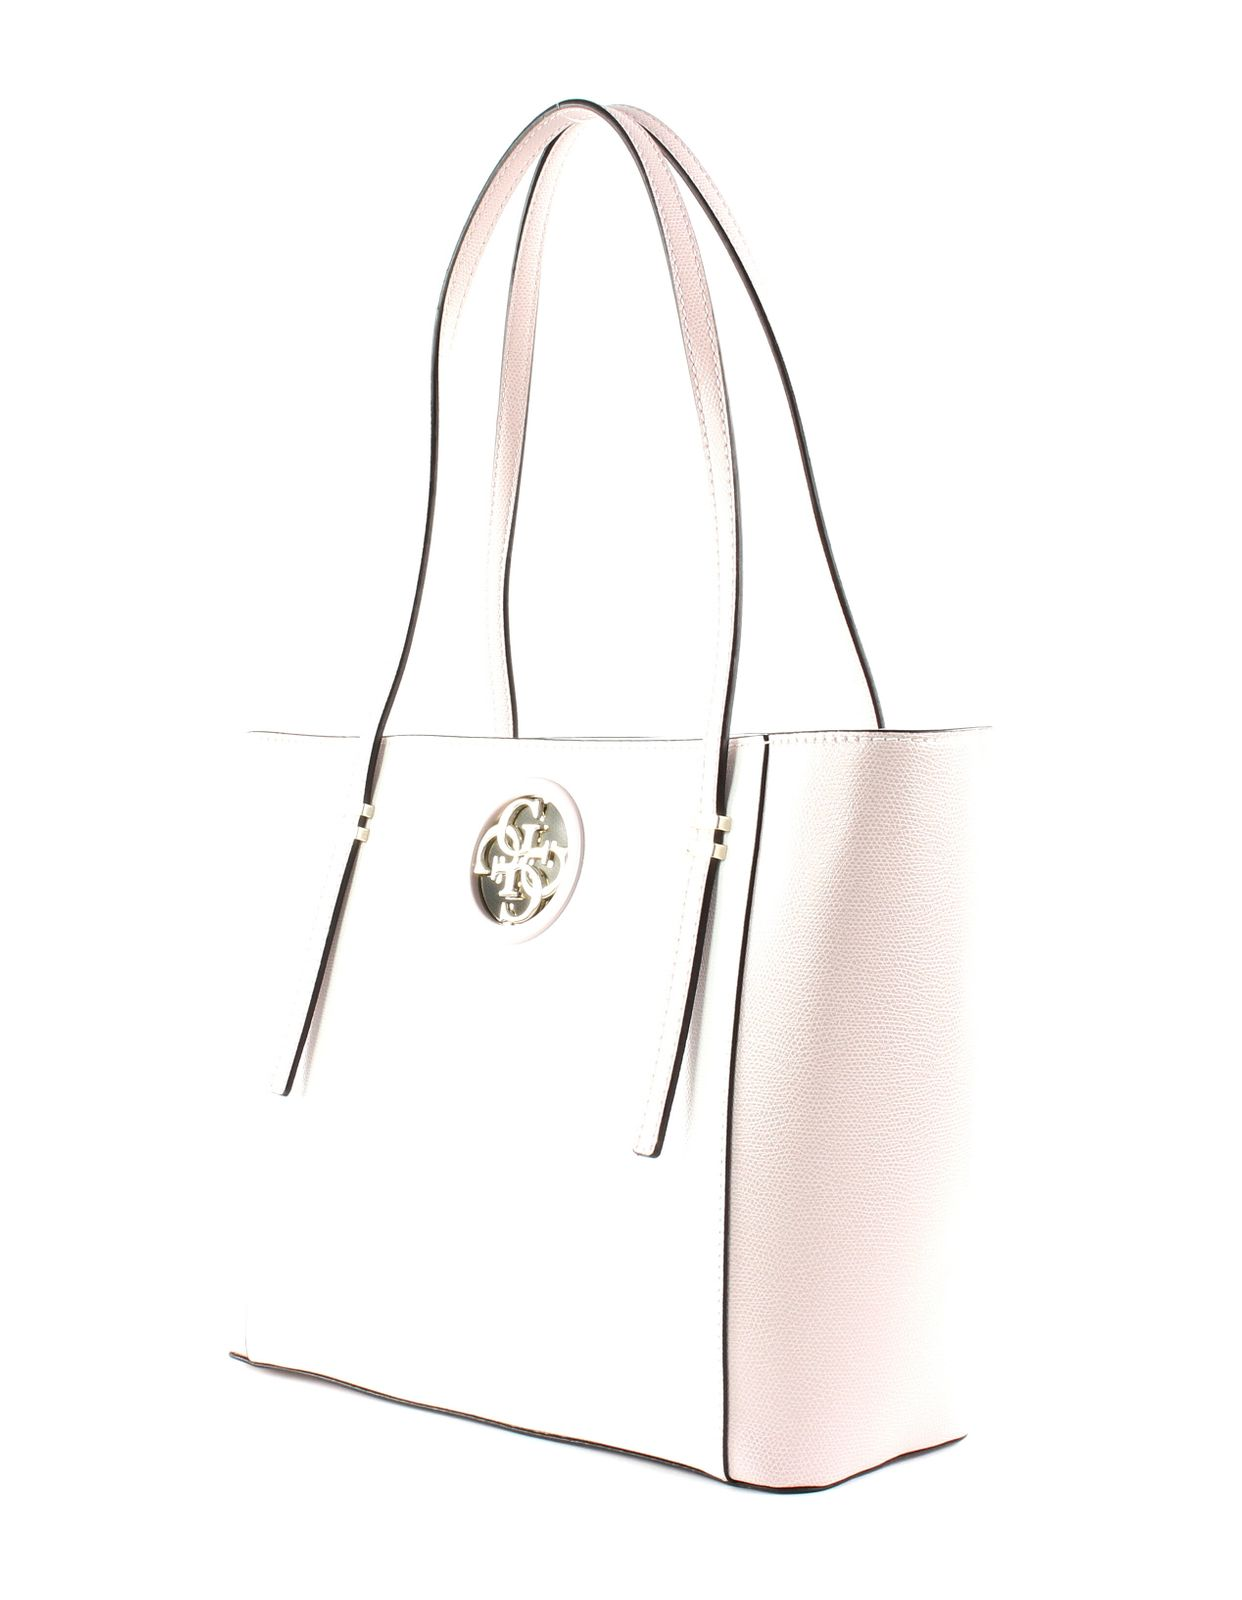 Details about GUESS shopper bag Open Road Tote Cameo Multi